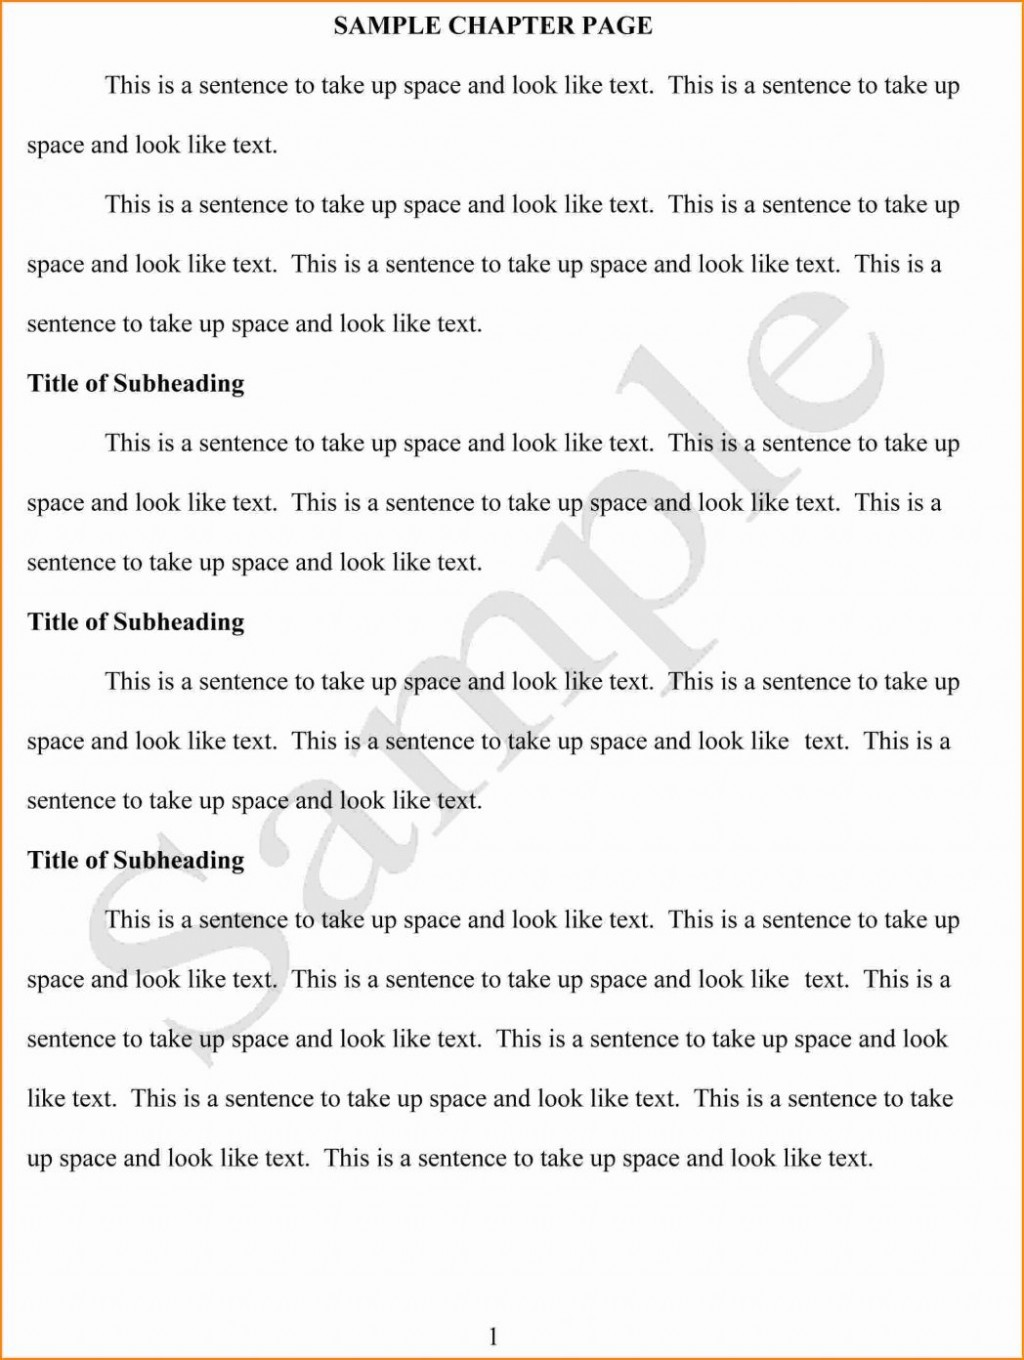 008 Parvana Essay Sample Thesis Statement Ssat Writing Promptss For Essays Psych Prompt New Sat 1048x1392 Surprising Pdf 2017 Large